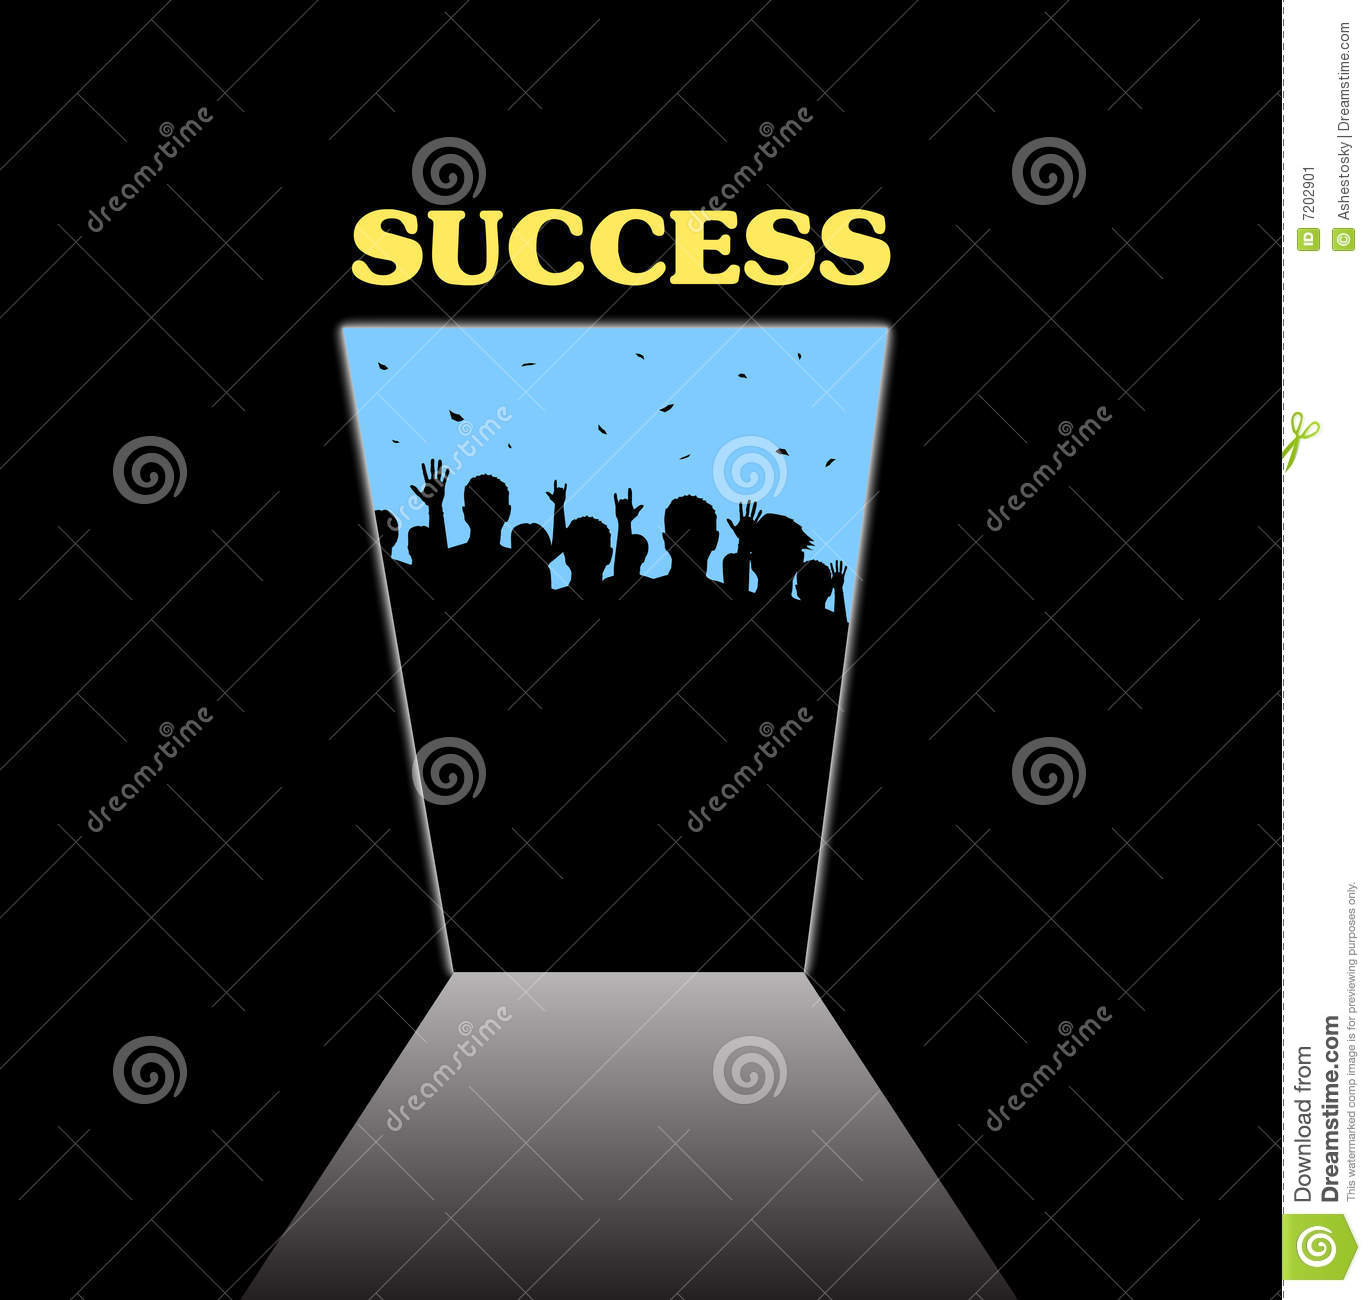 fame success The one minute zillionaire achieve wealth fame and success in an instant give or take a hundred years the one minute zillionaire achieve wealth fame and success.